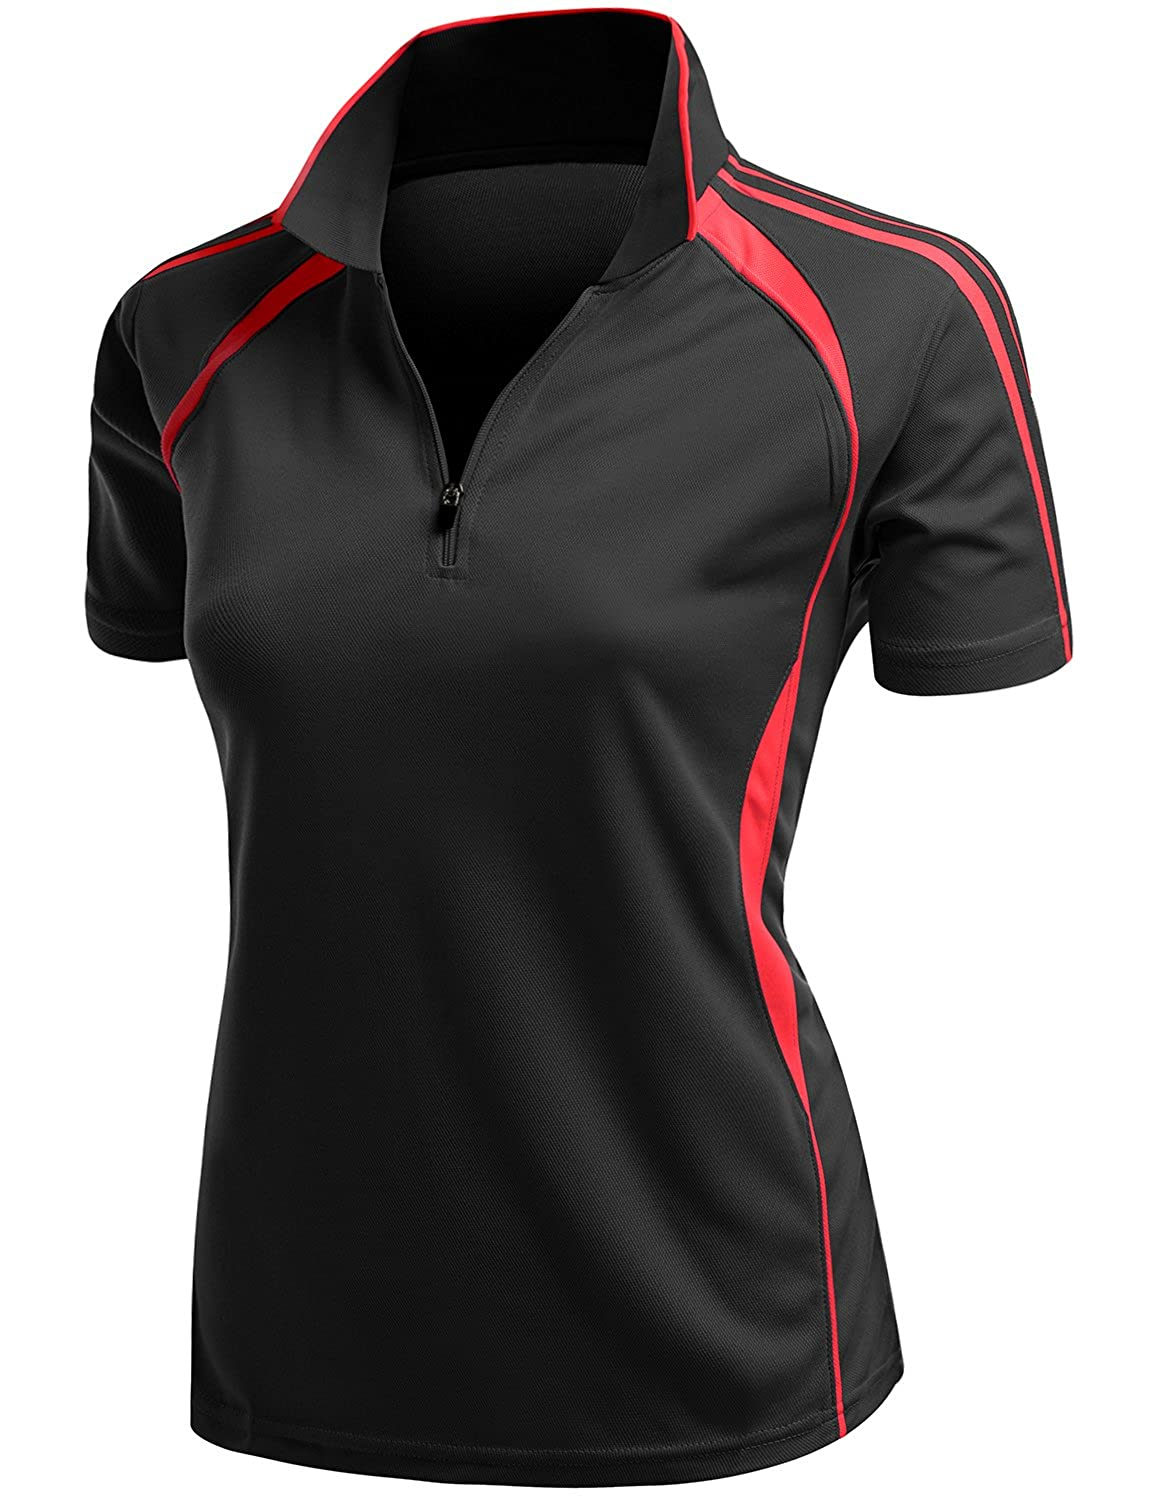 Collar Golf Shirt Images